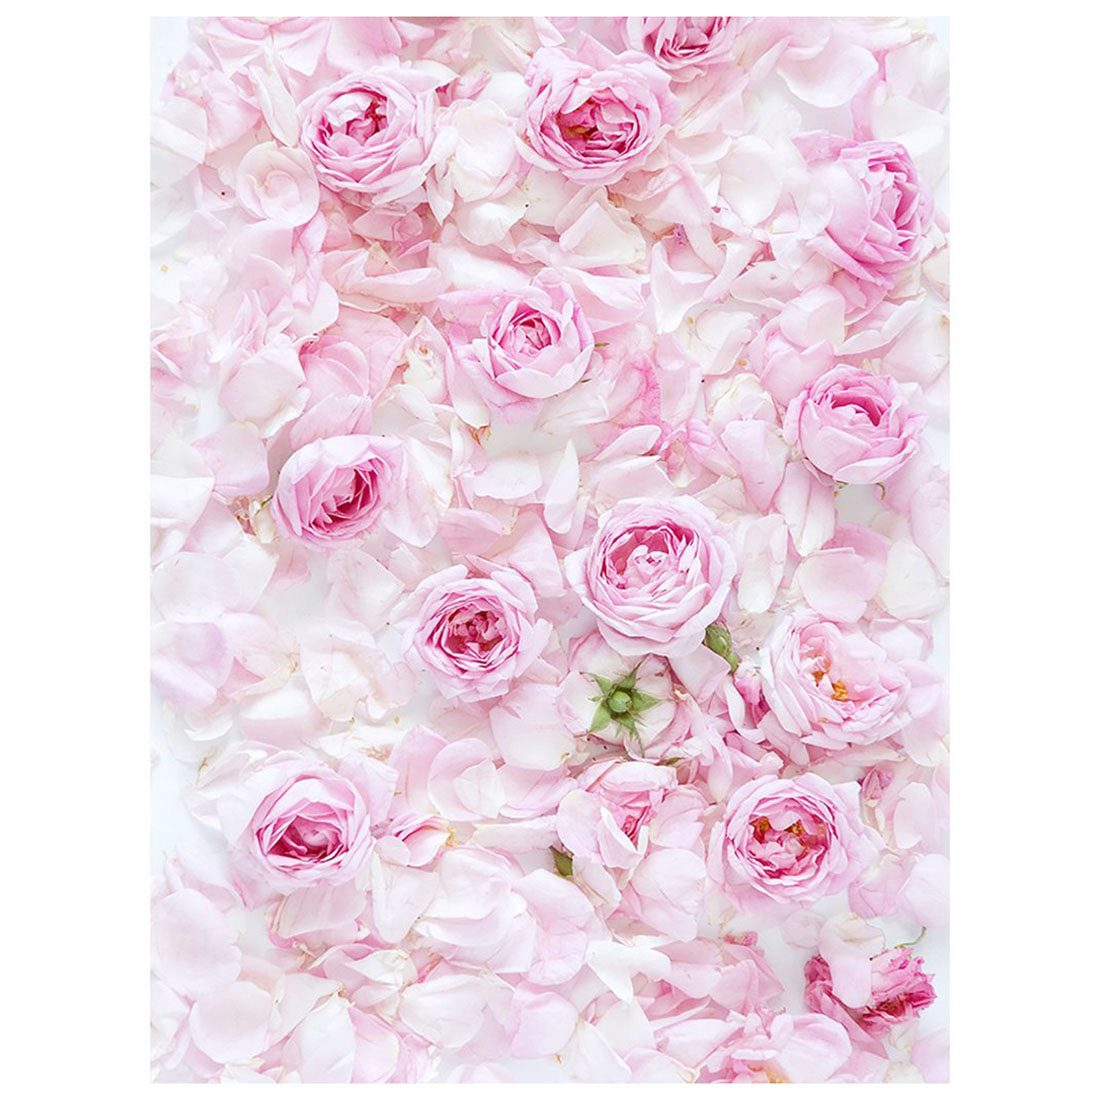 5x7ft Photography Backdrop Pink rose flower wall wedding love baby shower fresh background props photocall 8x10ft valentine s day photography pink love heart shape adult portrait backdrop d 7324